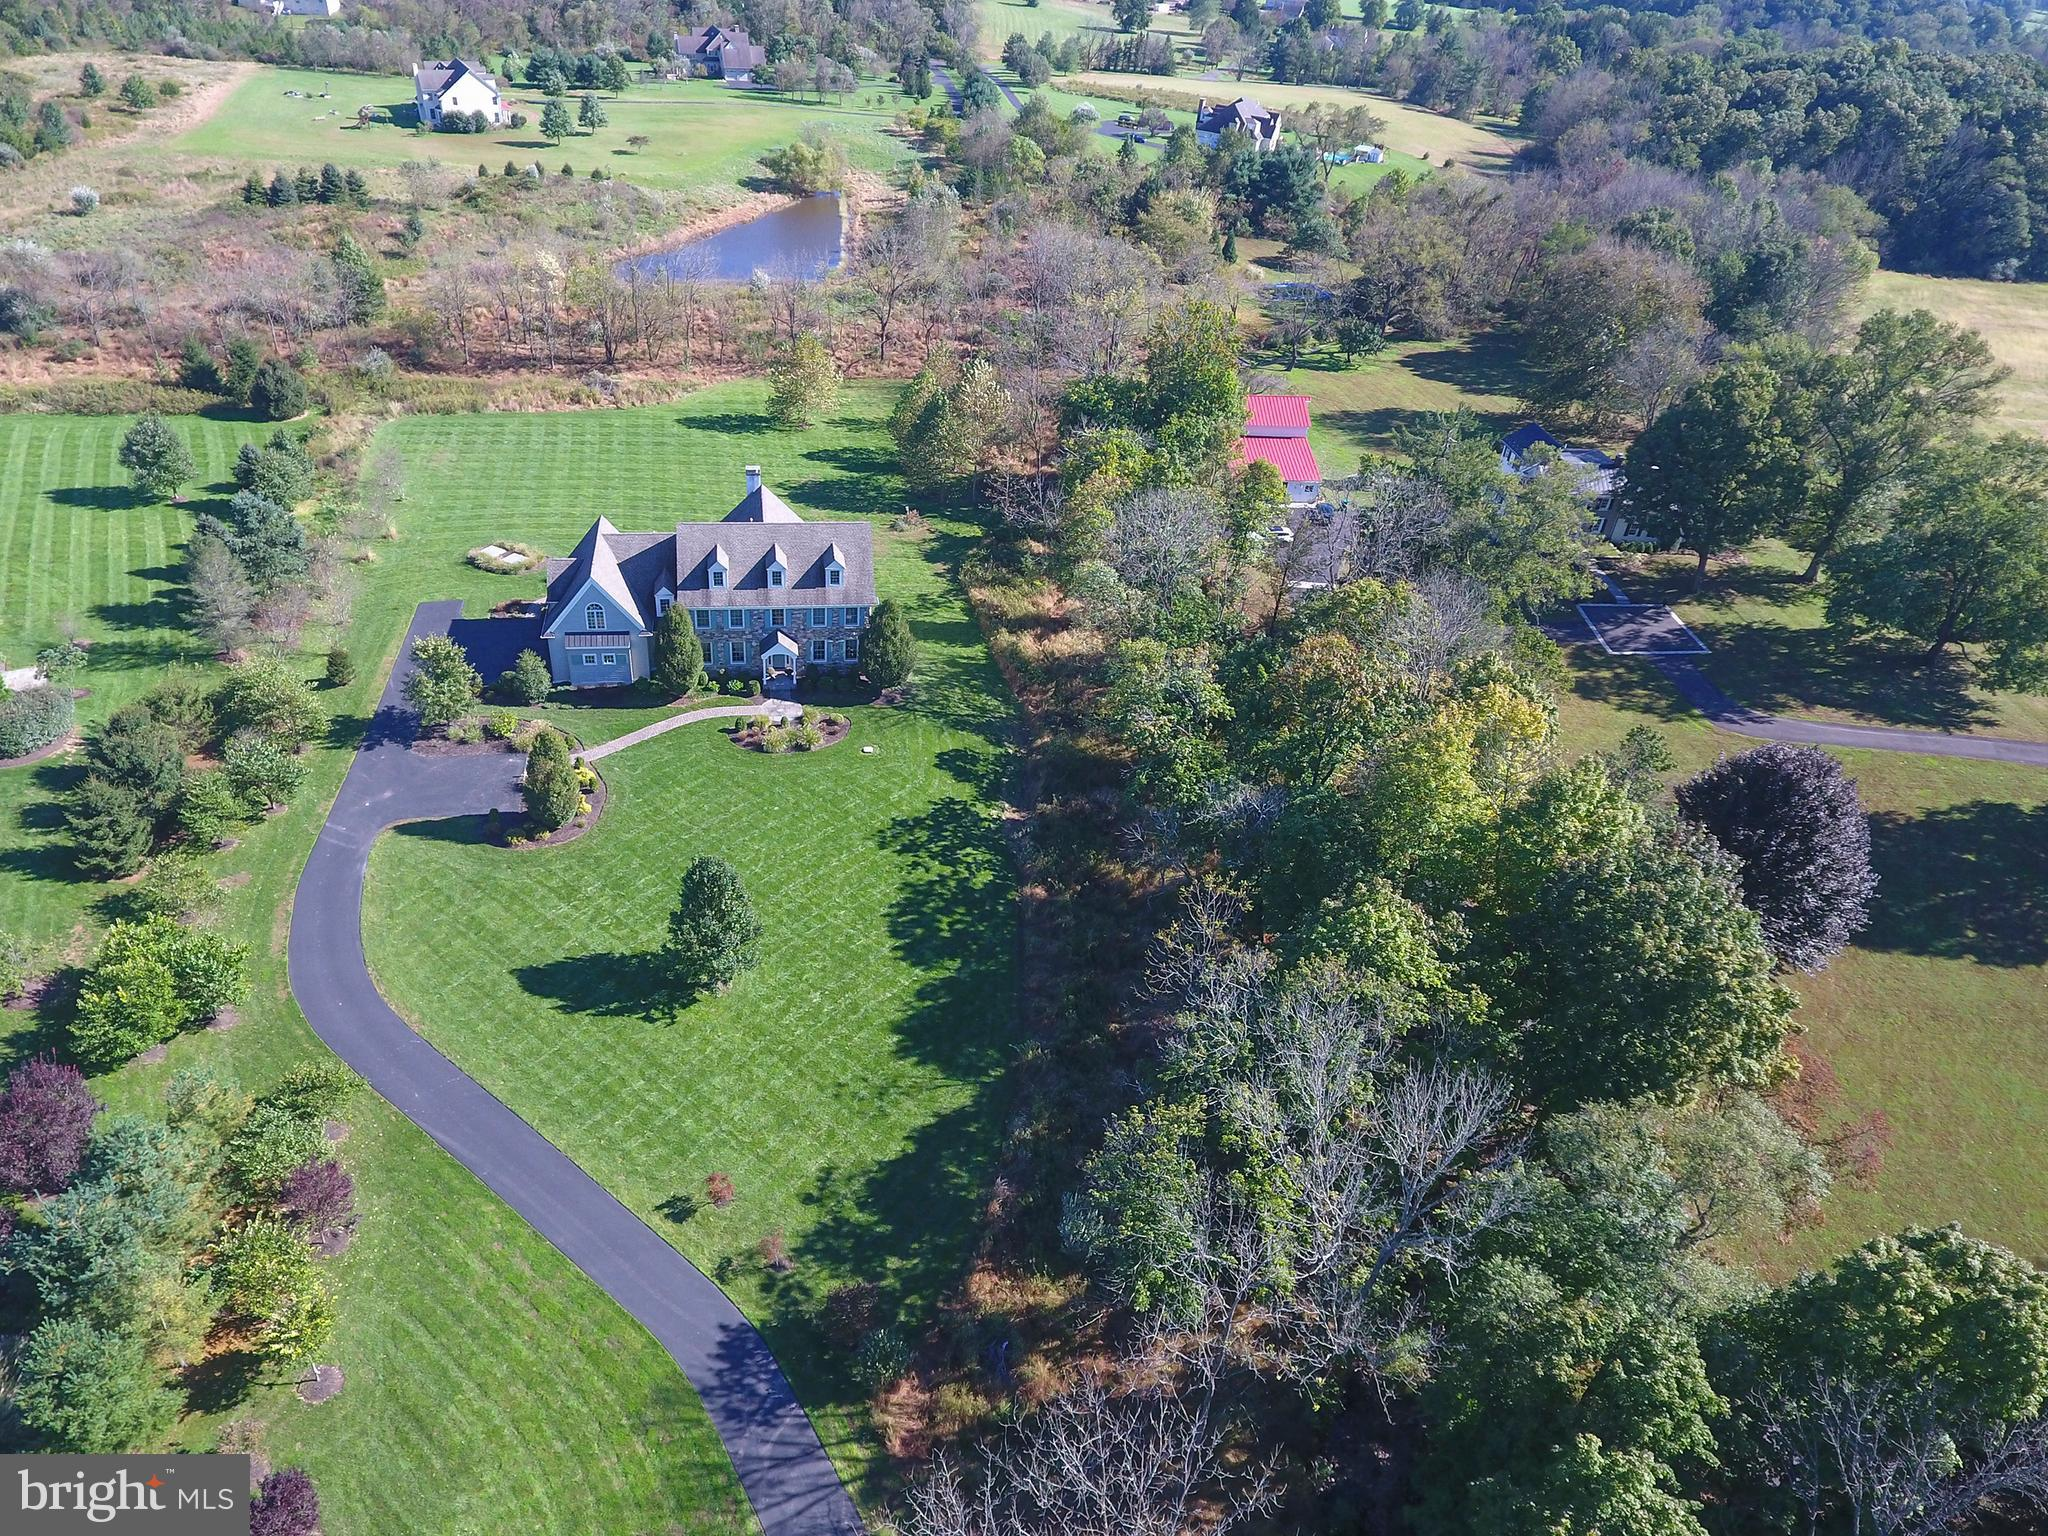 Set majestically back on a long winding driveway, is a gorgeous John Arrow custom-built reproduction Colonial with many luxurious upgrades! Built with the perfect blend of fine craftsmanship, energy efficiency and regard for environmental impact, this upscale and pristine home will please the most discerning buyer! The attention-to-detail is evident with the stone and mixed media exterior and is highlighted by the beautifully crafted portico with slate landing. This curb appeal will beckon you in! Once inside, the reclaimed random width hardwood floors throughout the main level set the tone for quality and warmth in this gracious and open floor plan. The voluminous foyer provides a warm welcome with stunning oak staircase and Palladian door. The spacious formal dining and living rooms flank the foyer with extensive millwork, including wainscoting and are perfect for entertaining. The dramatic double story family room, with numerous windows is crowned by a stunning floor-to-ceiling stone fireplace. Your resident chef will appreciate the gourmet kitchen with custom Cherry cabinetry, granite counters and high-end appliances, including a built-in Sub-Zero refrigerator, Wolf 5 burner gas cooktop, Wolf double oven and Asko dishwasher. The expansive island offers plenty of prep space as well as a venue for casual dining. The many custom interior cabinetry options will promote ease of use and organization. The adjoining breakfast room with vaulted ceiling is sun-drenched and enjoys long-distance views, including the picturesque pond. Plan on dining al fresco on the Trex deck overlooking the nearly 5 acres of land with mature trees and landscaping, allowing privacy and endless possibilities, including a pool. The stately and bright study provides the ideal in-home office with glass French doors adorned with a transom window and is accessible via two adjoining rooms. Up the privacy staircase, you'll find the sumptuous and expansive master bedroom suite which provides an amazing retreat with seating alcove, vaulted ceiling with elegant chandelier and an oversized walk-in closet. The spa-like bathroom features a Jacuzzi tub, a his and her sink vanity with granite counters and a separate water closet with shower. The second level is completed by three generous-sized bedrooms, a Princess Suite with full bathroom and a Jack 'n Jill bathroom servicing the other two bedrooms. You'll enjoy another level of living for your recreational needs with the finished, walk-out basement with numerous daylight windows, a built-in bar, full bathroom and Berber carpeting. Storage is plentiful with the expansive unfinished portion. Home is NAHB GREEN CERTIFIED with reasonable utility expenses. Close proximity to NJ, NY and Routes 202 and 95 and the prestigious Lookaway Golf Club. Blue Ribbon Award Winning Central Bucks Schools. Schedule your private tour today!